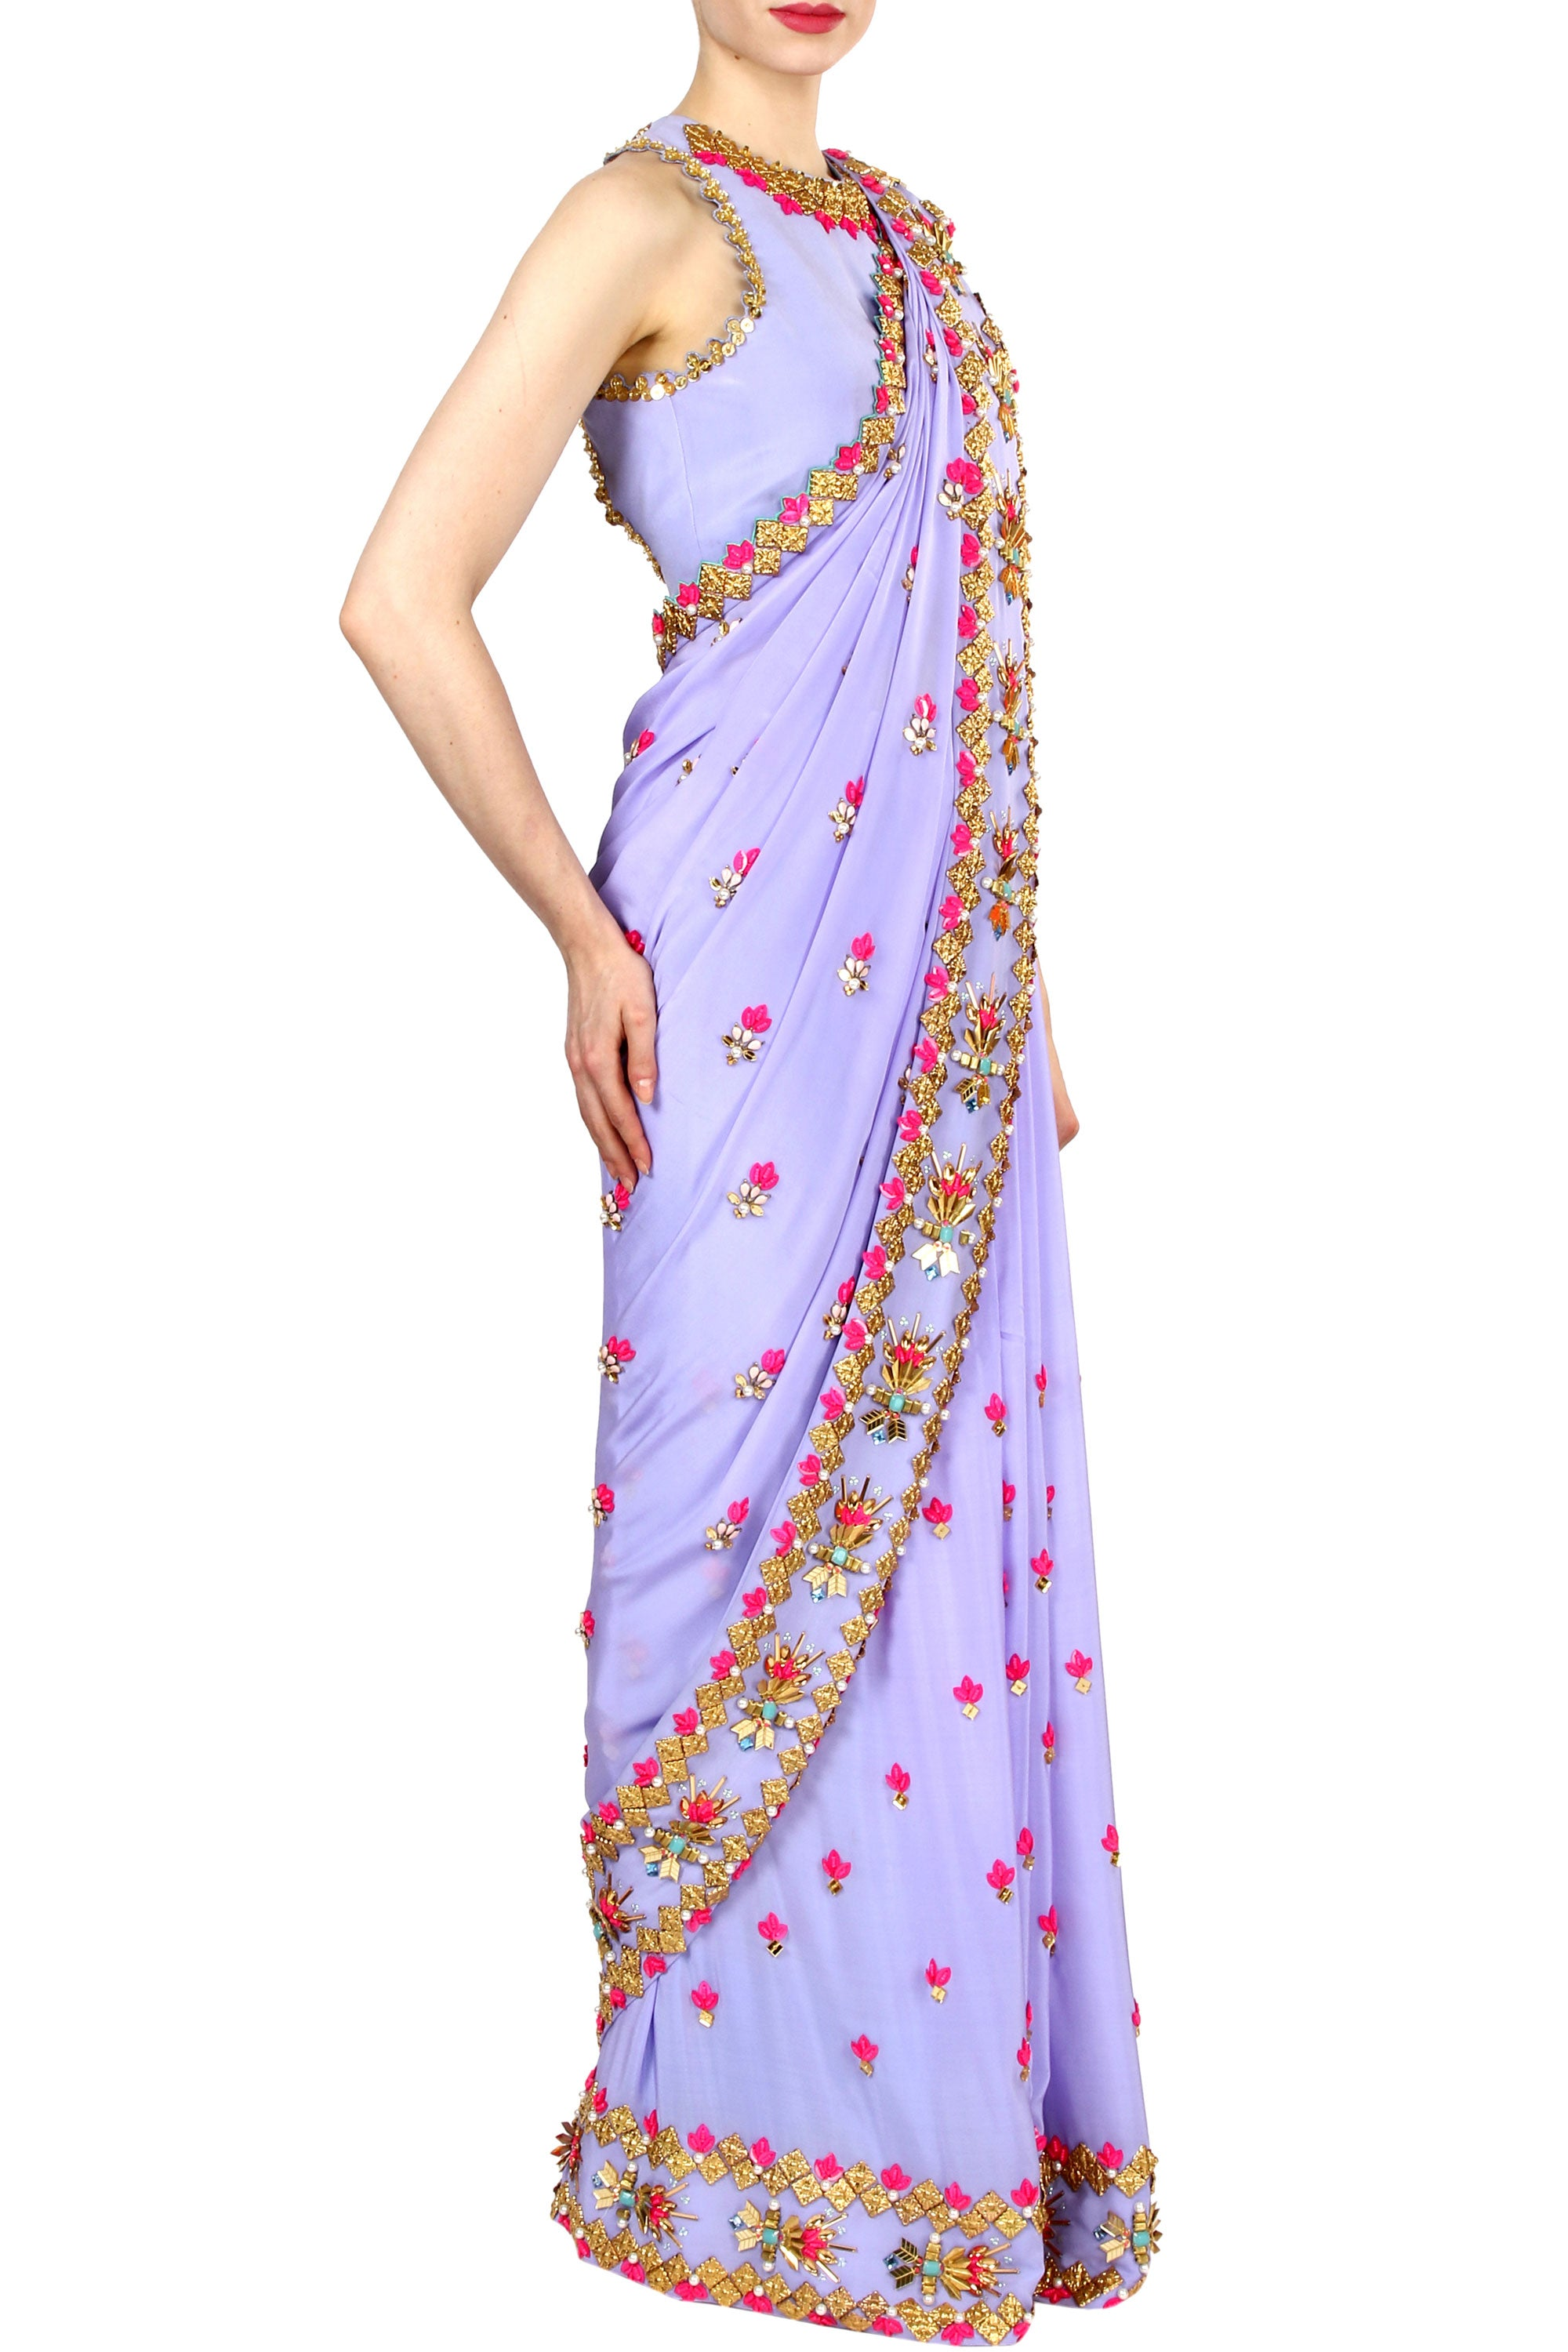 Periwinkle Lilac Saree Side